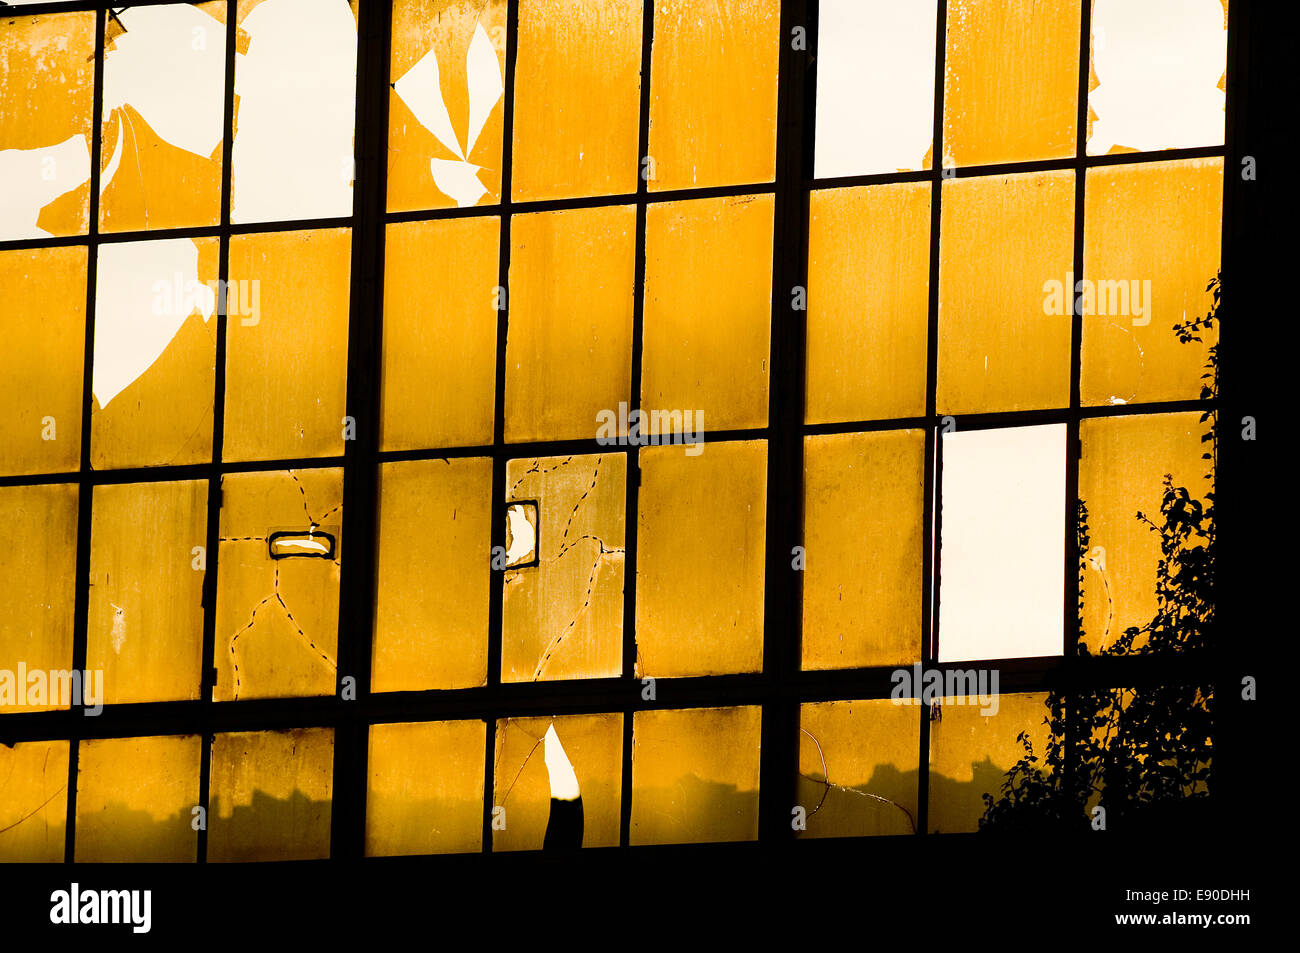 Broken window - Stock Image